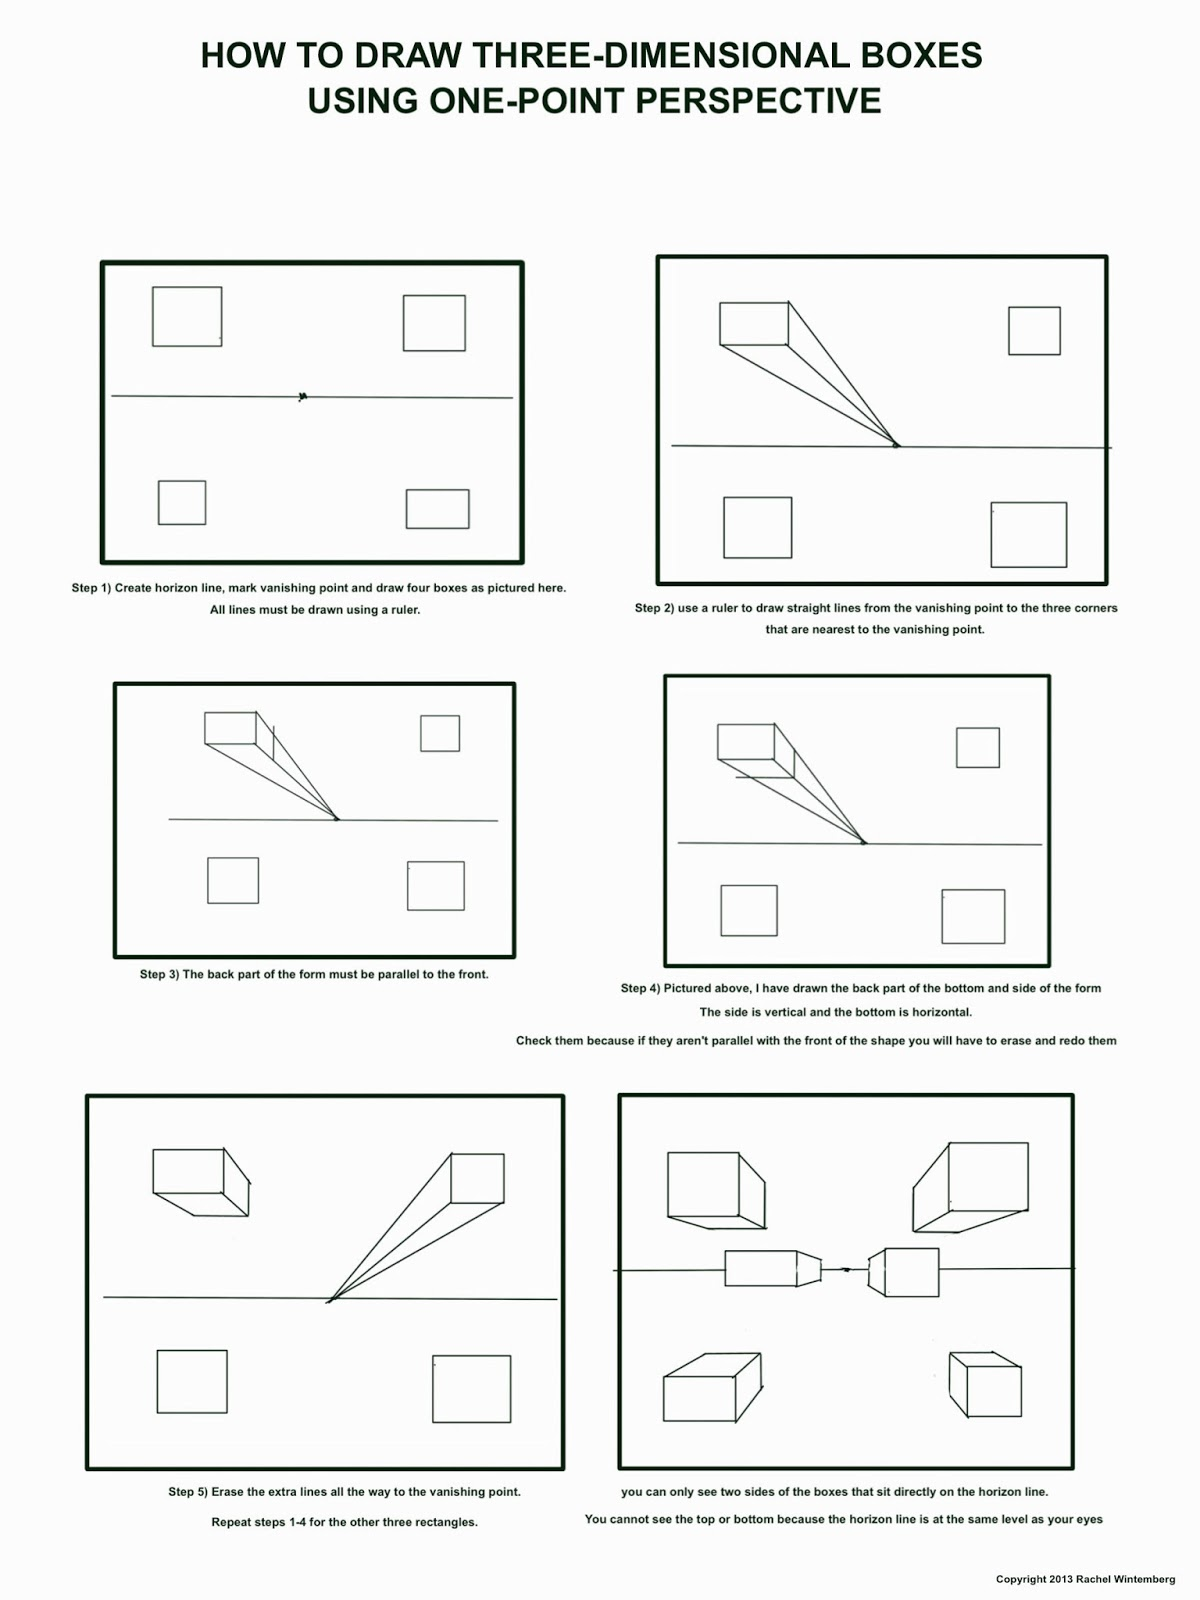 Worksheets One Point Perspective Worksheet the helpful art teacher fun with one point perspective boxes and print out follow instructions on worksheets above to draw in directions e